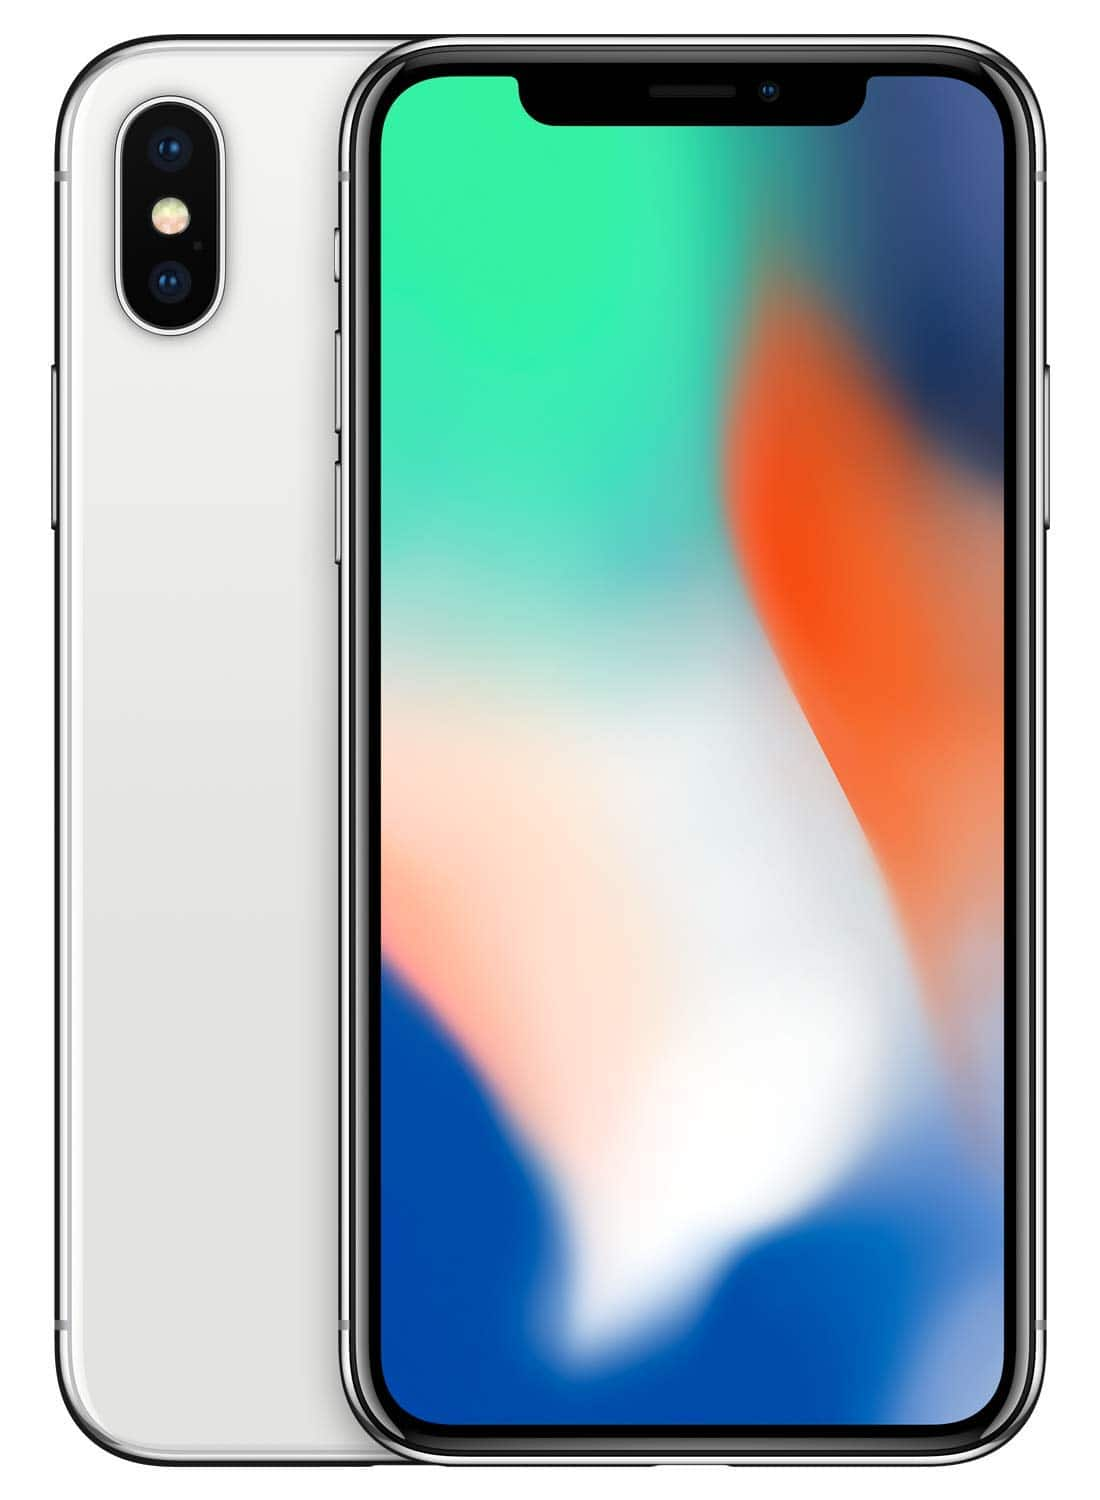 iPhone 8, 8 plus, and X $300 Target gift card with upgrade